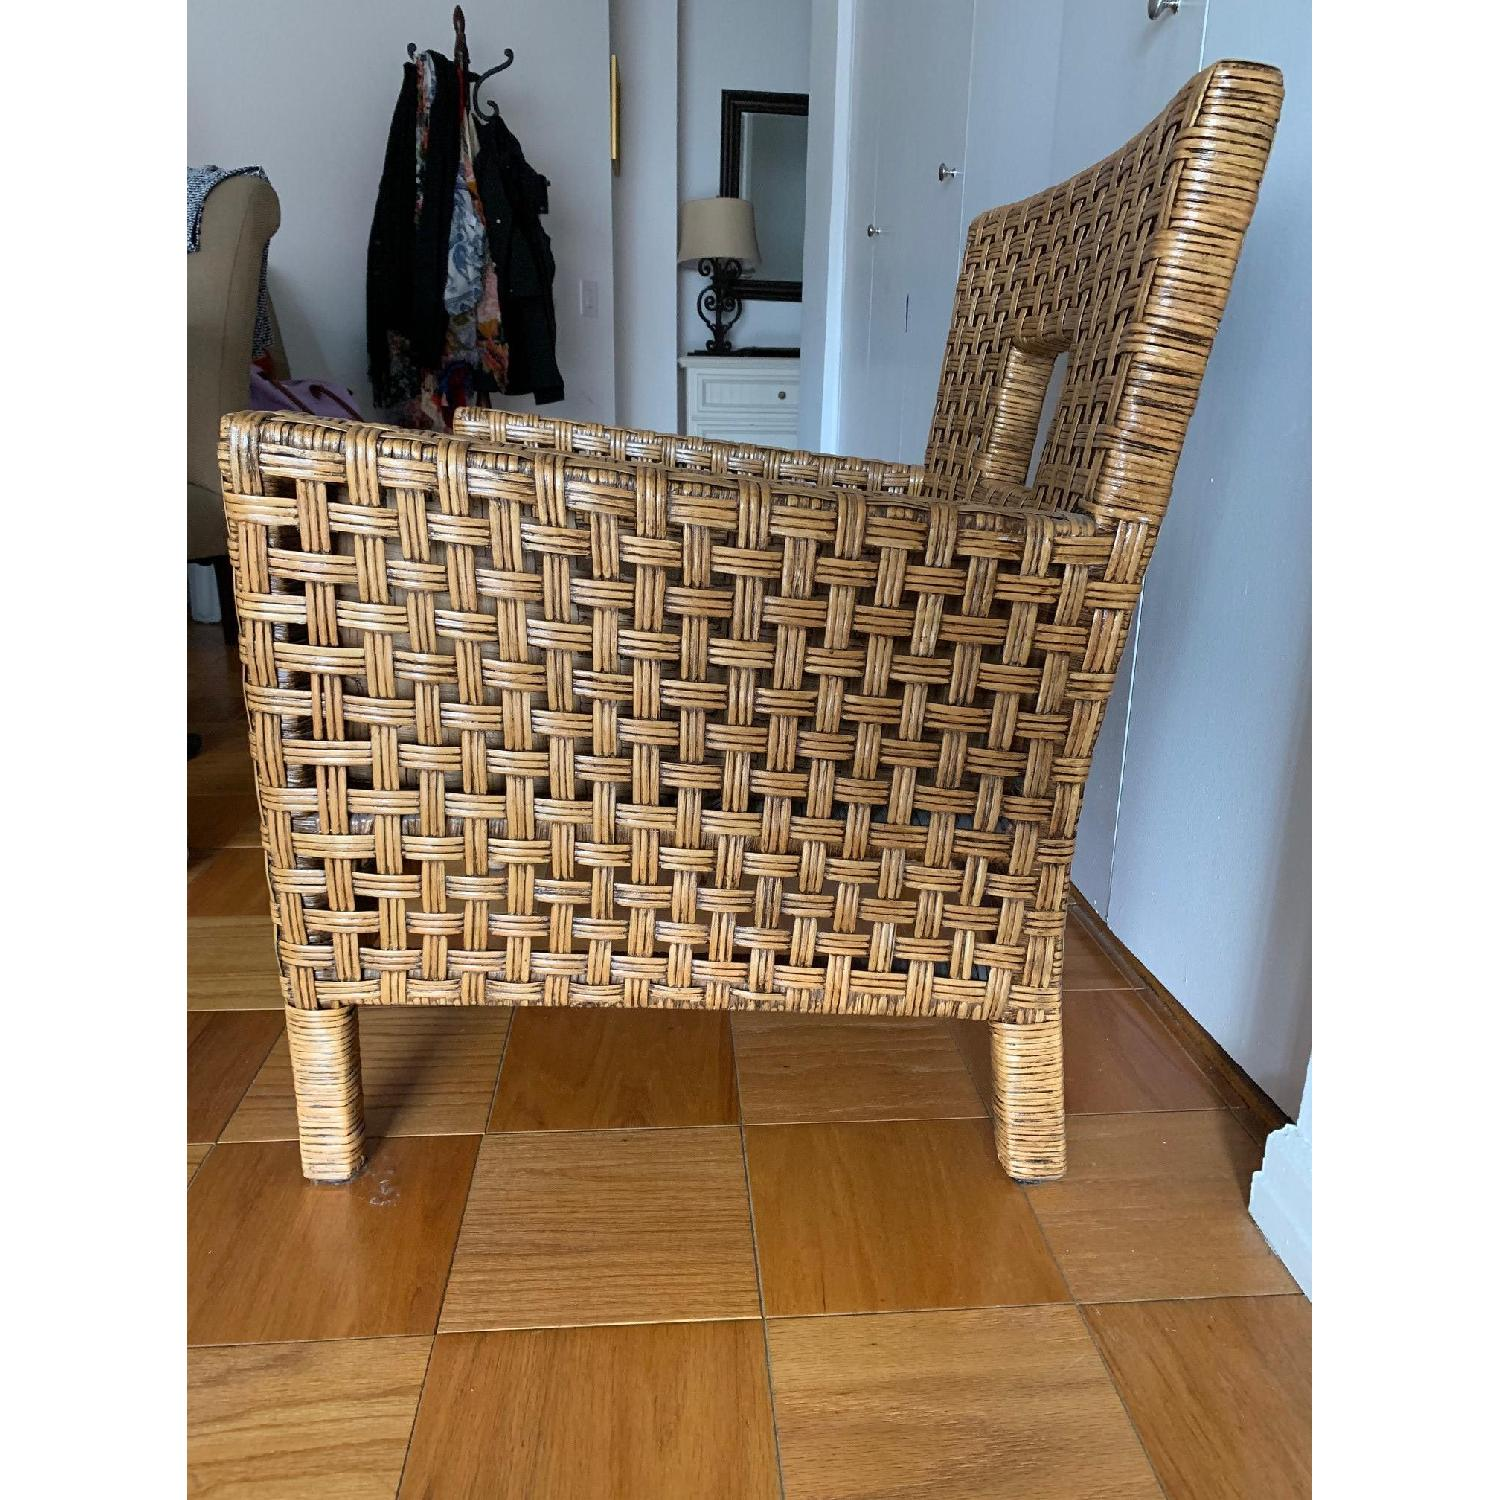 Pier 1 Wicker Chairs w/ Removable Cushions - image-2